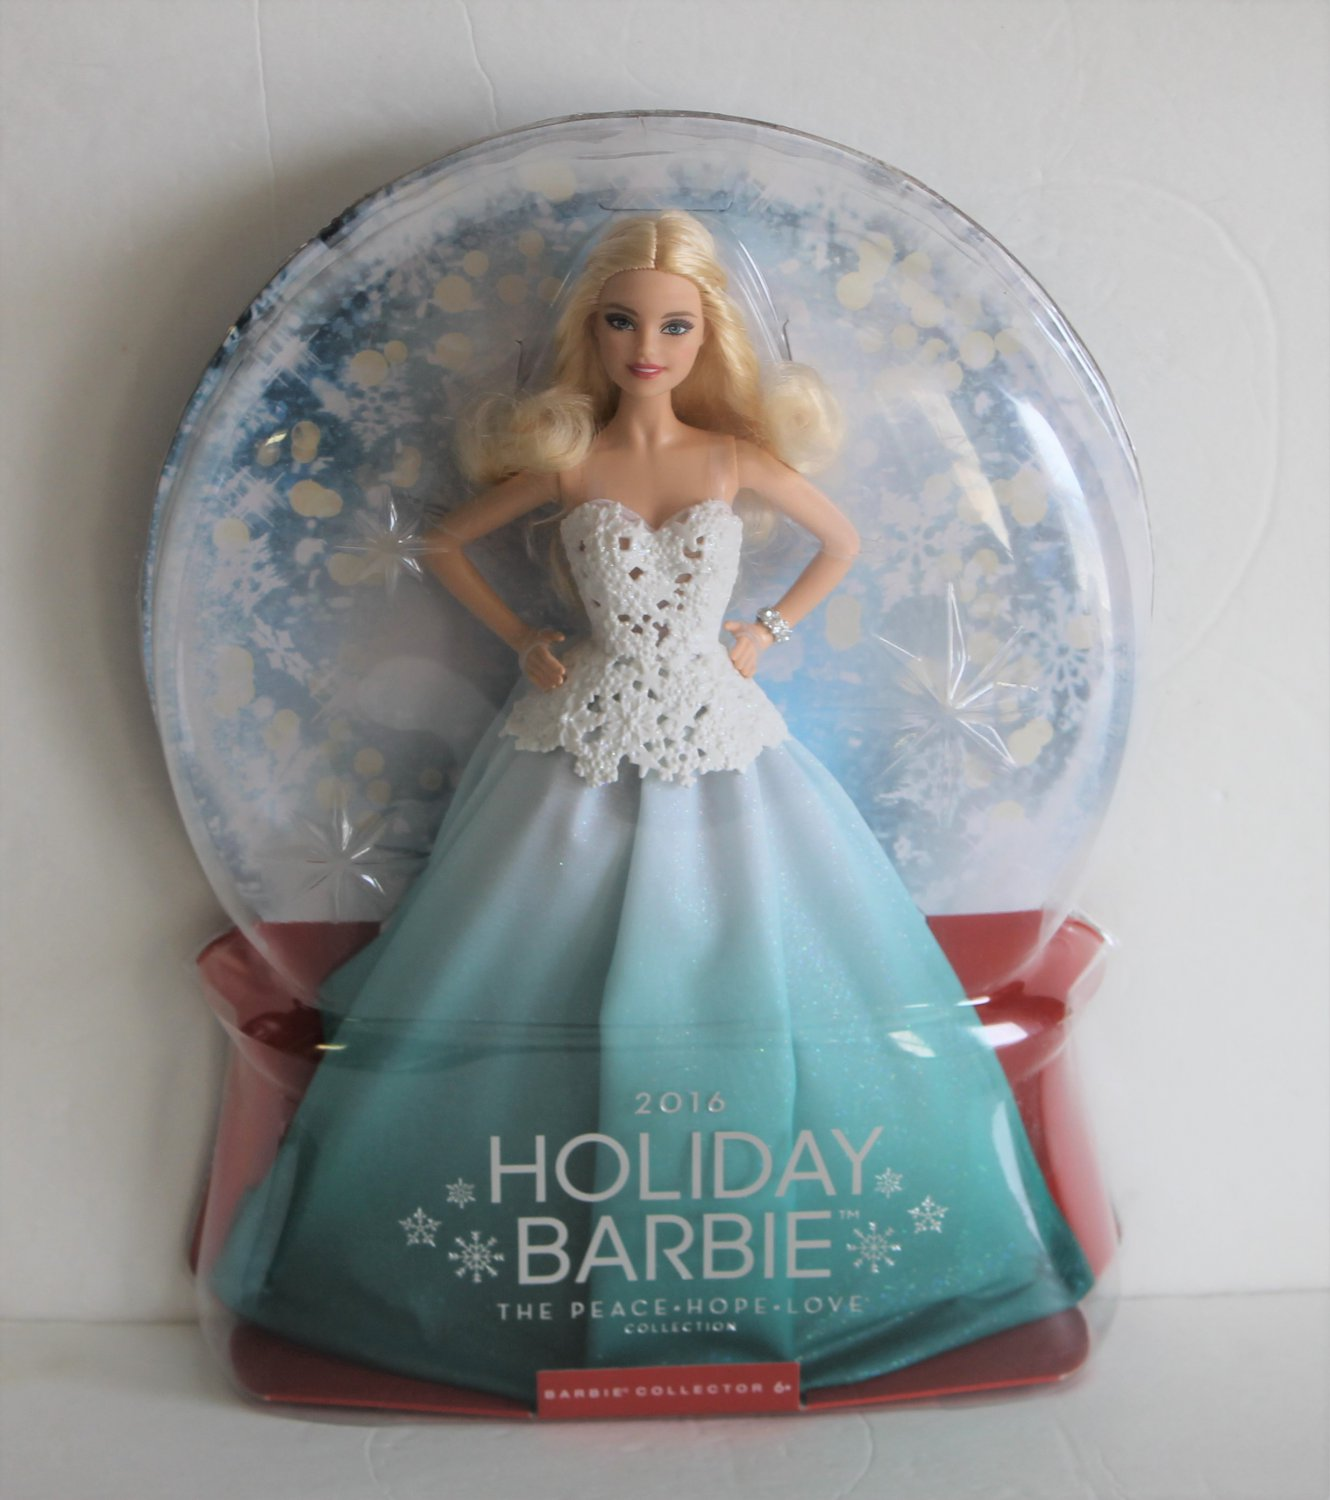 New 2016 Holiday Barbie Peace Hope Love Collection